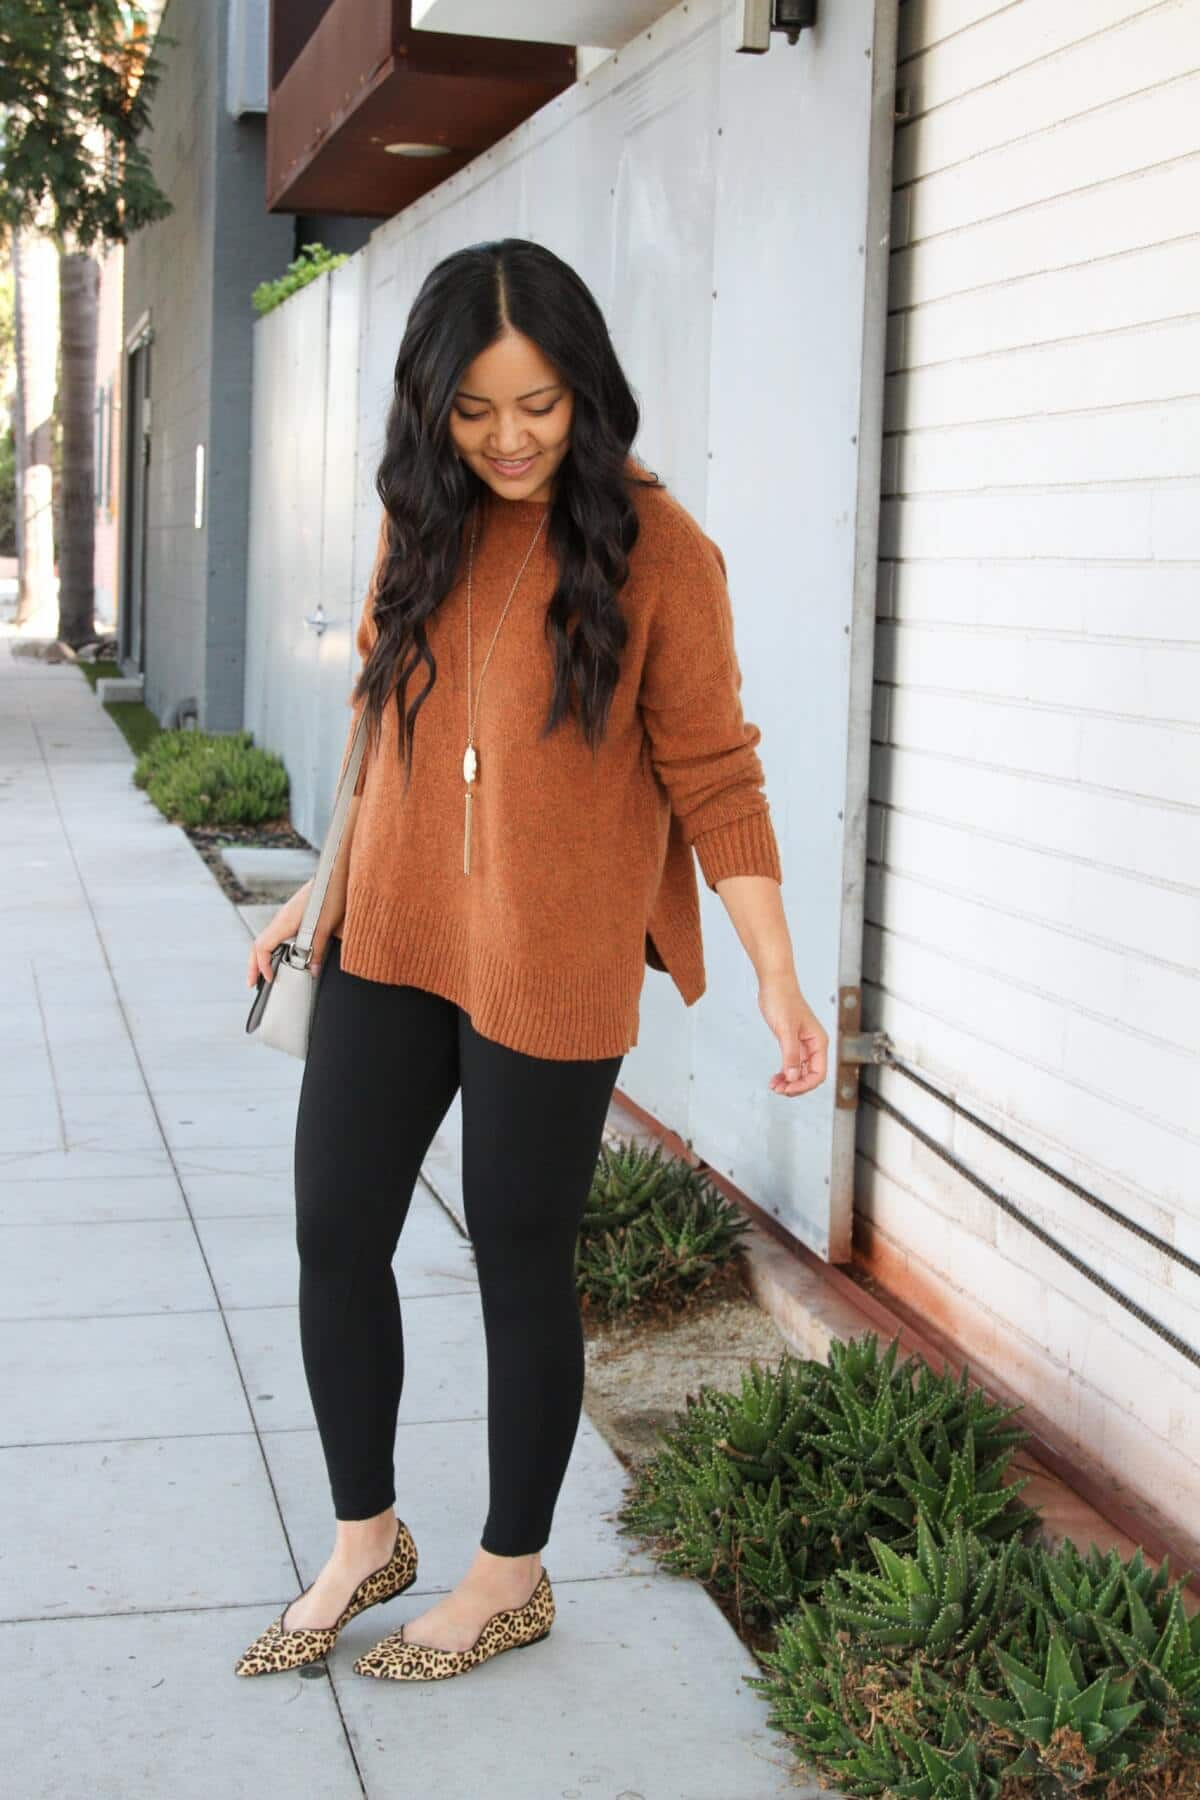 Casual Fall Outfit: rust crewneck sweater + black skinny pants + leopard print flats + grey crossbody bag + long white and gold tassel pendant necklace + metallic leather earrings